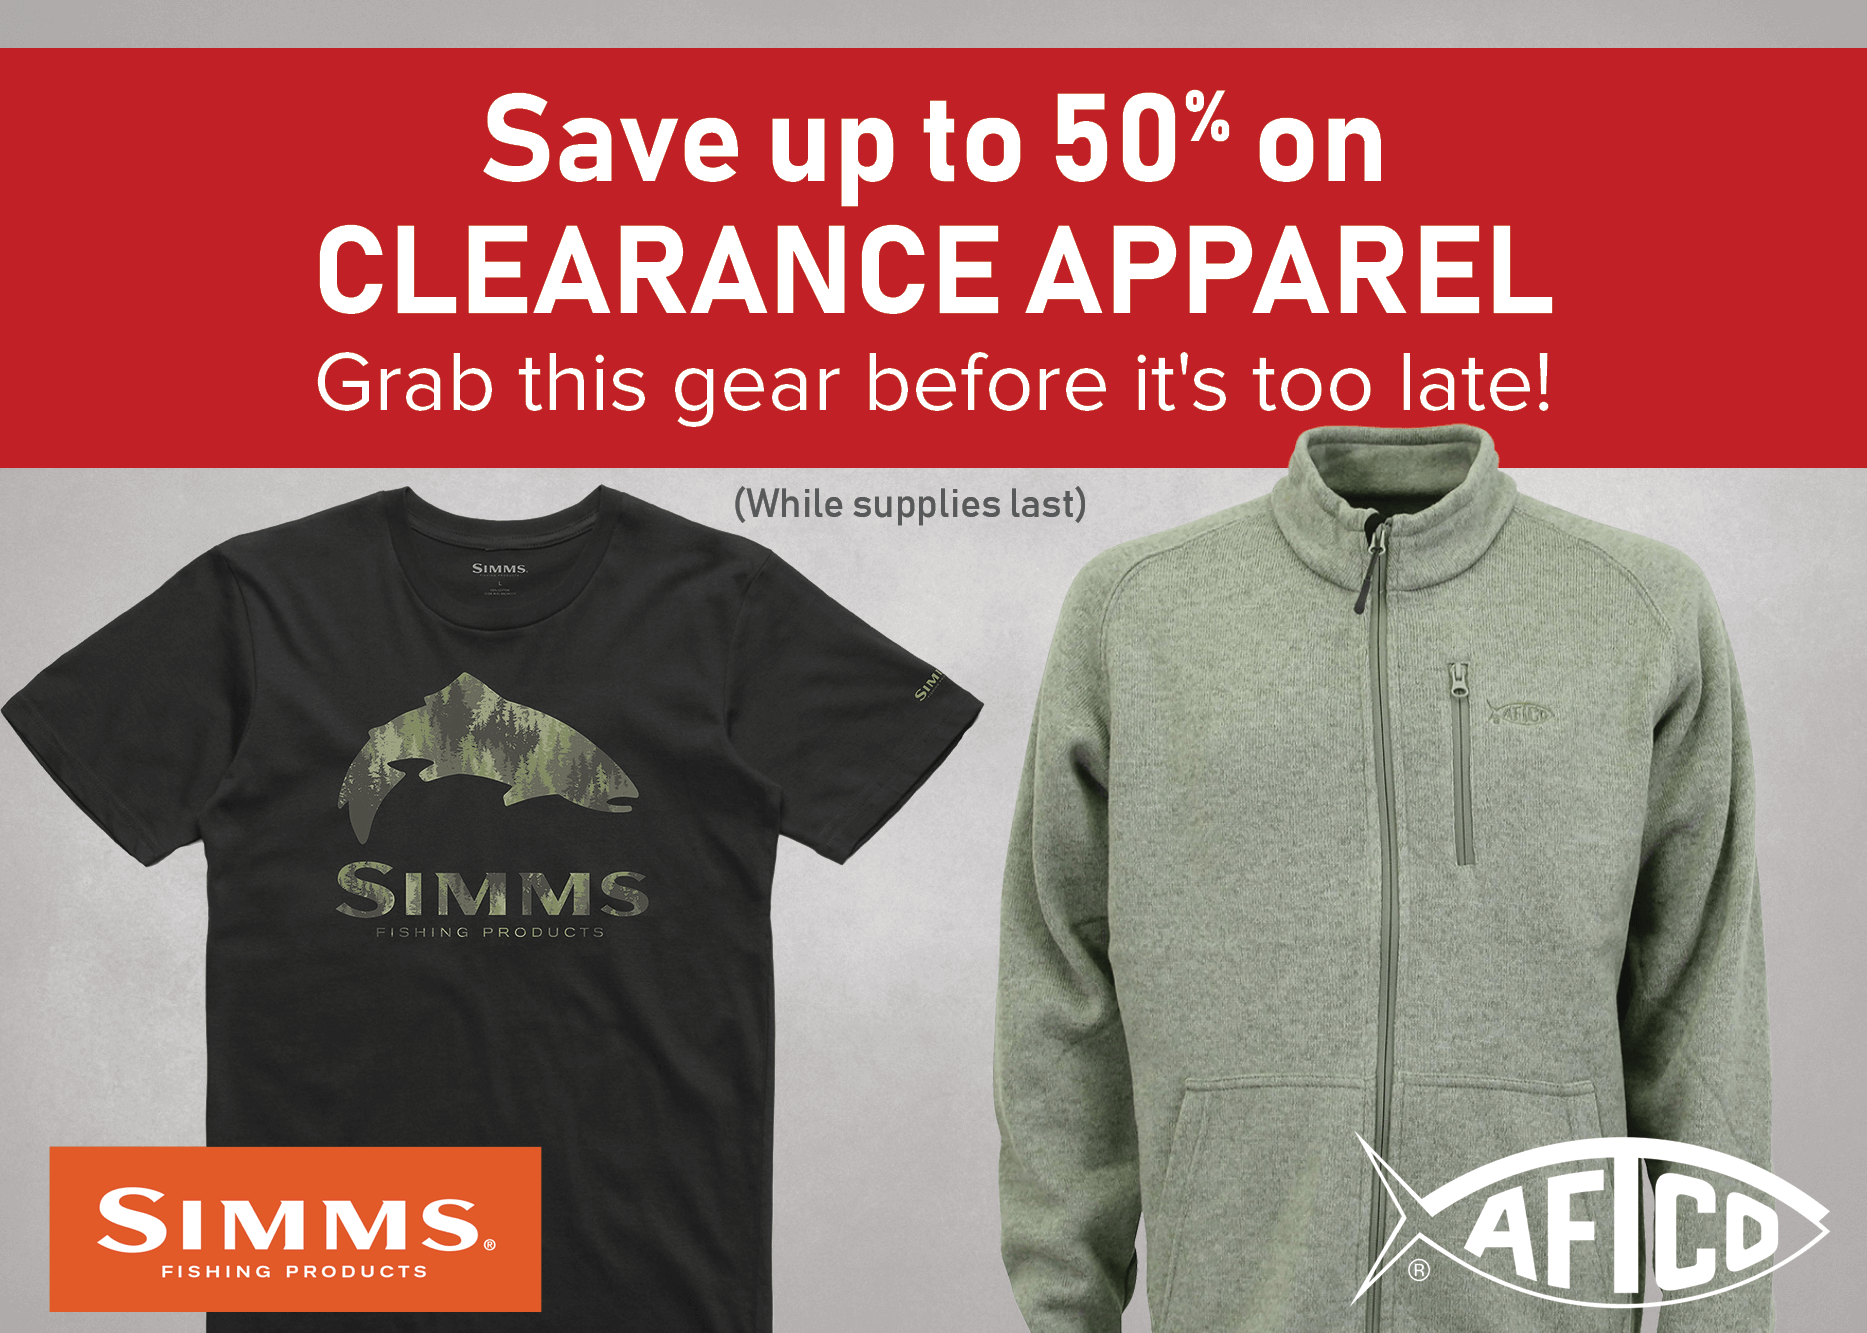 Save up to 50 on Clearance Apparel